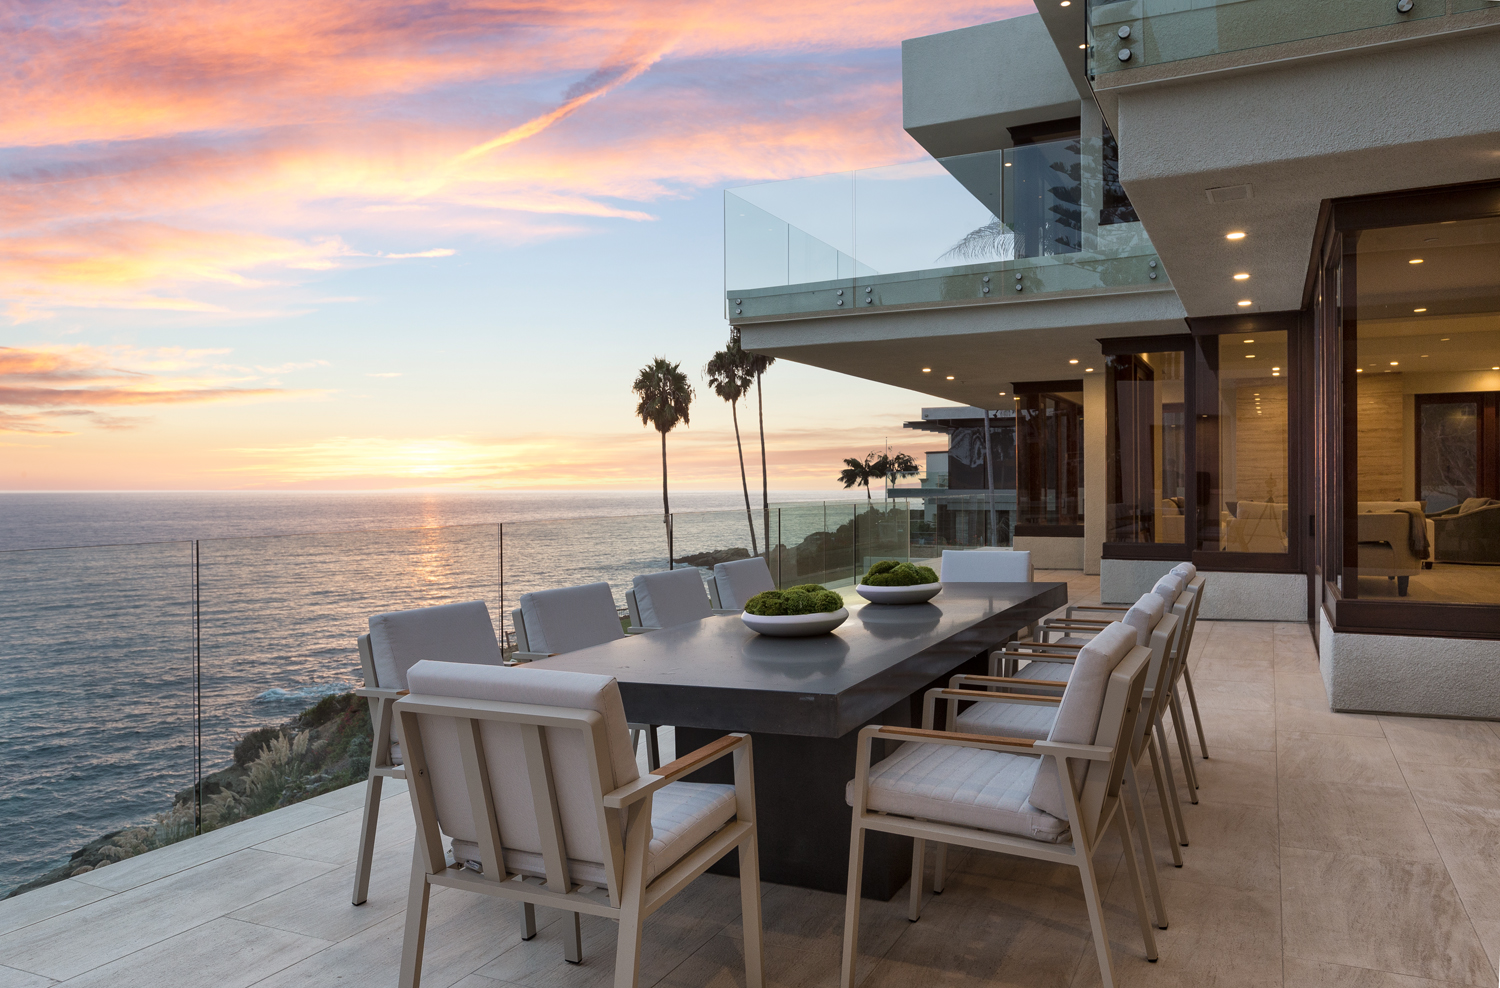 emilkara, laguna beach architectural photographer, luxury home, real estate photography